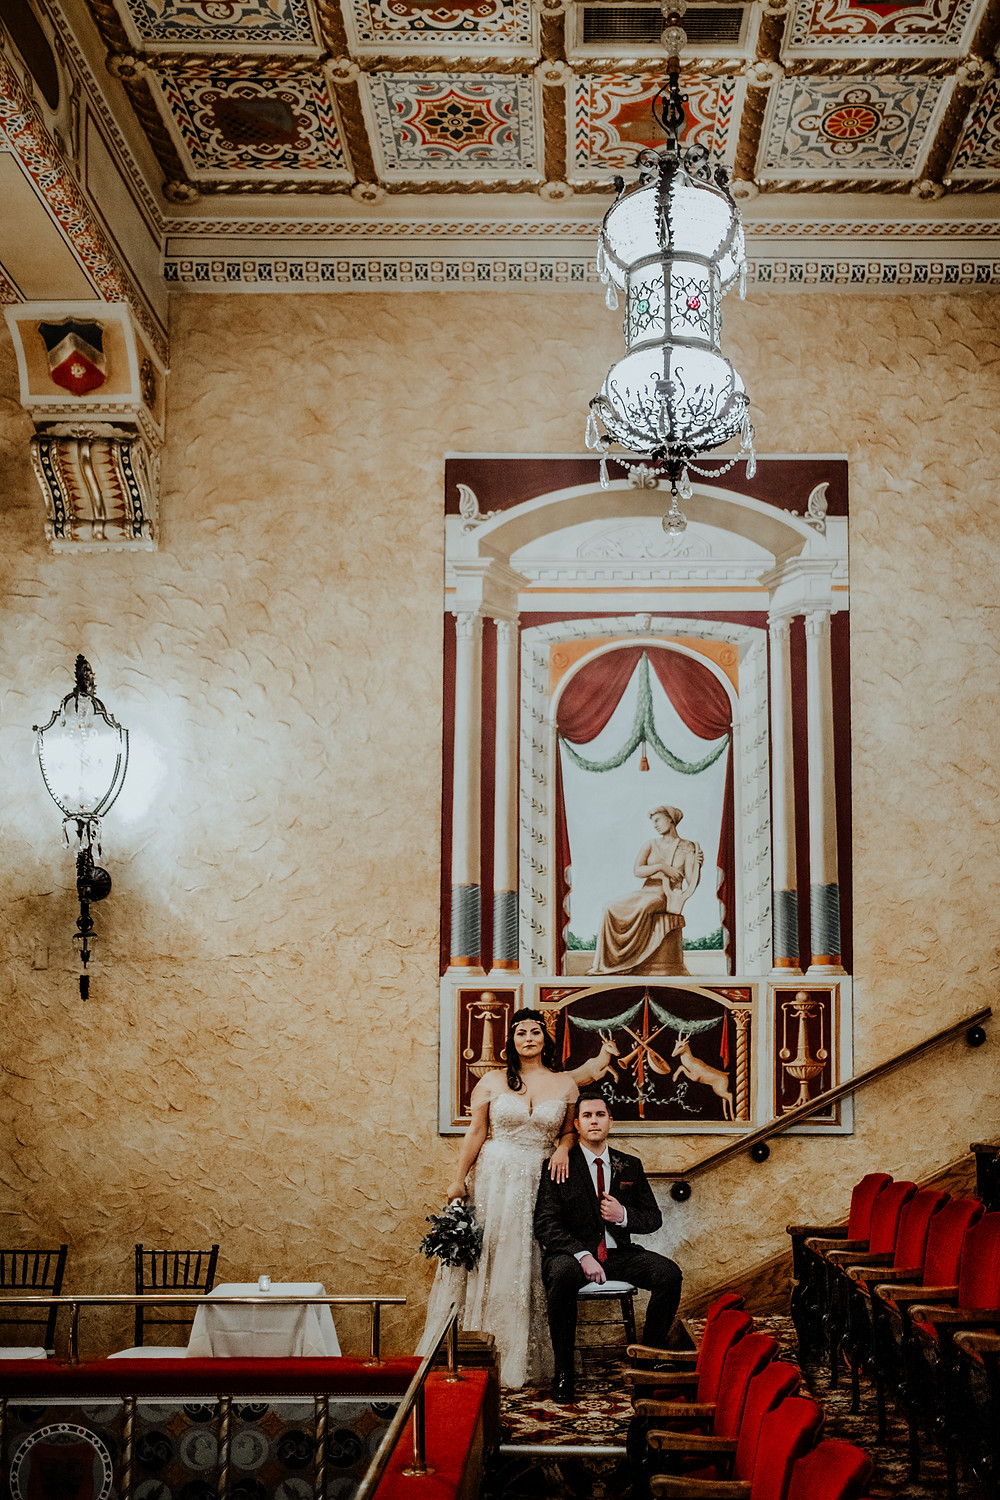 wedding photo at the gem theater taken by little blue bird photography in detroit, michigan